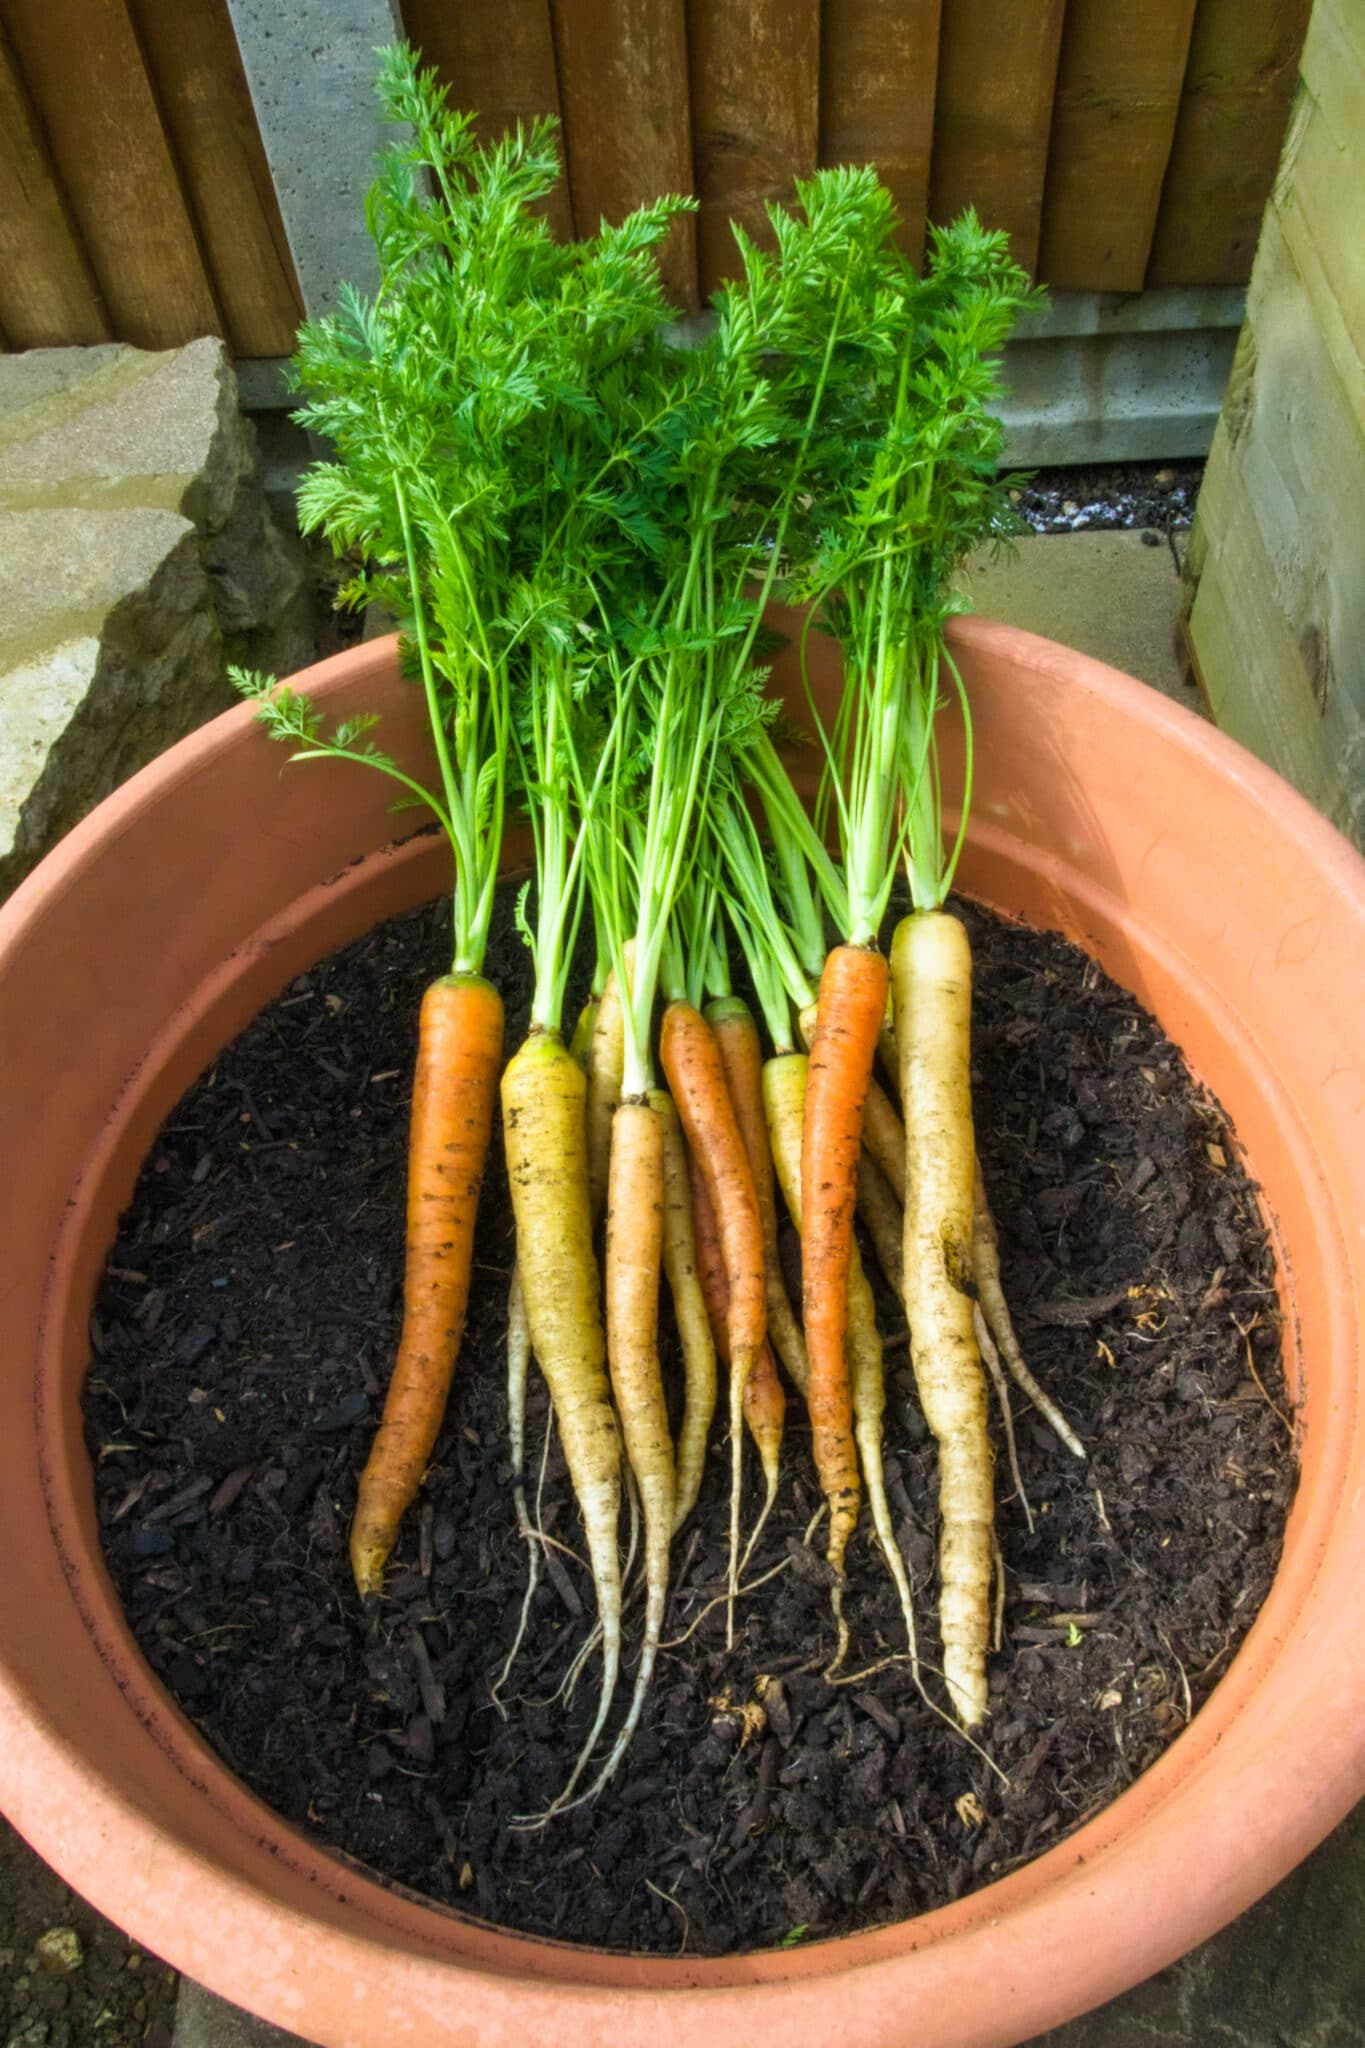 Freshly harvested carrots from a large terracotta pot.